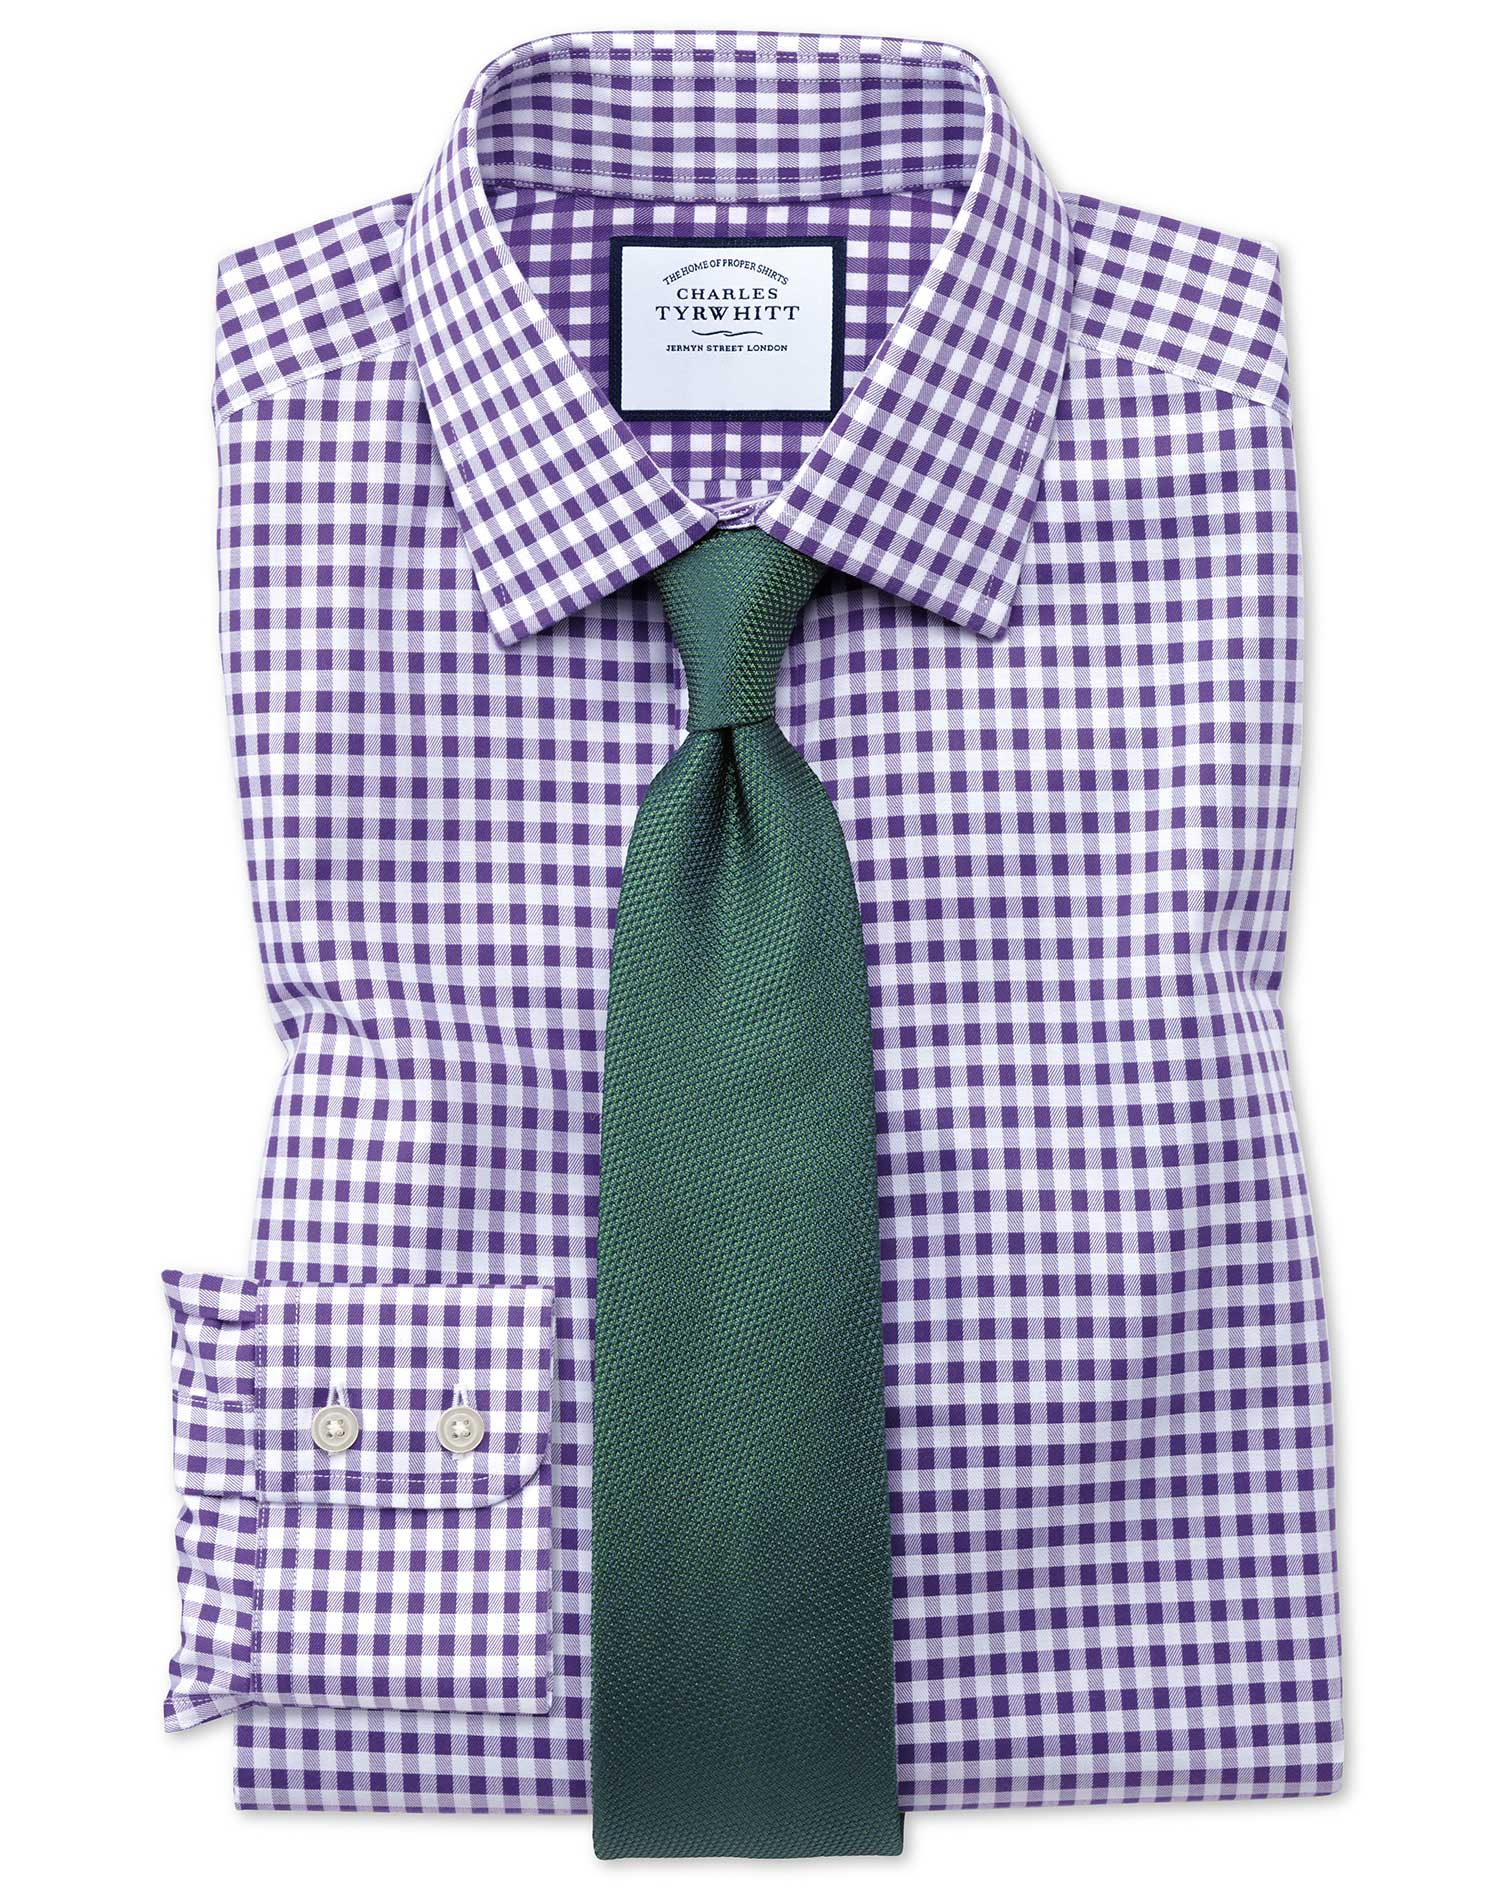 Classic Fit Non-Iron Gingham Purple Cotton Formal Shirt Single Cuff Size 20/37 by Charles Tyrwhitt